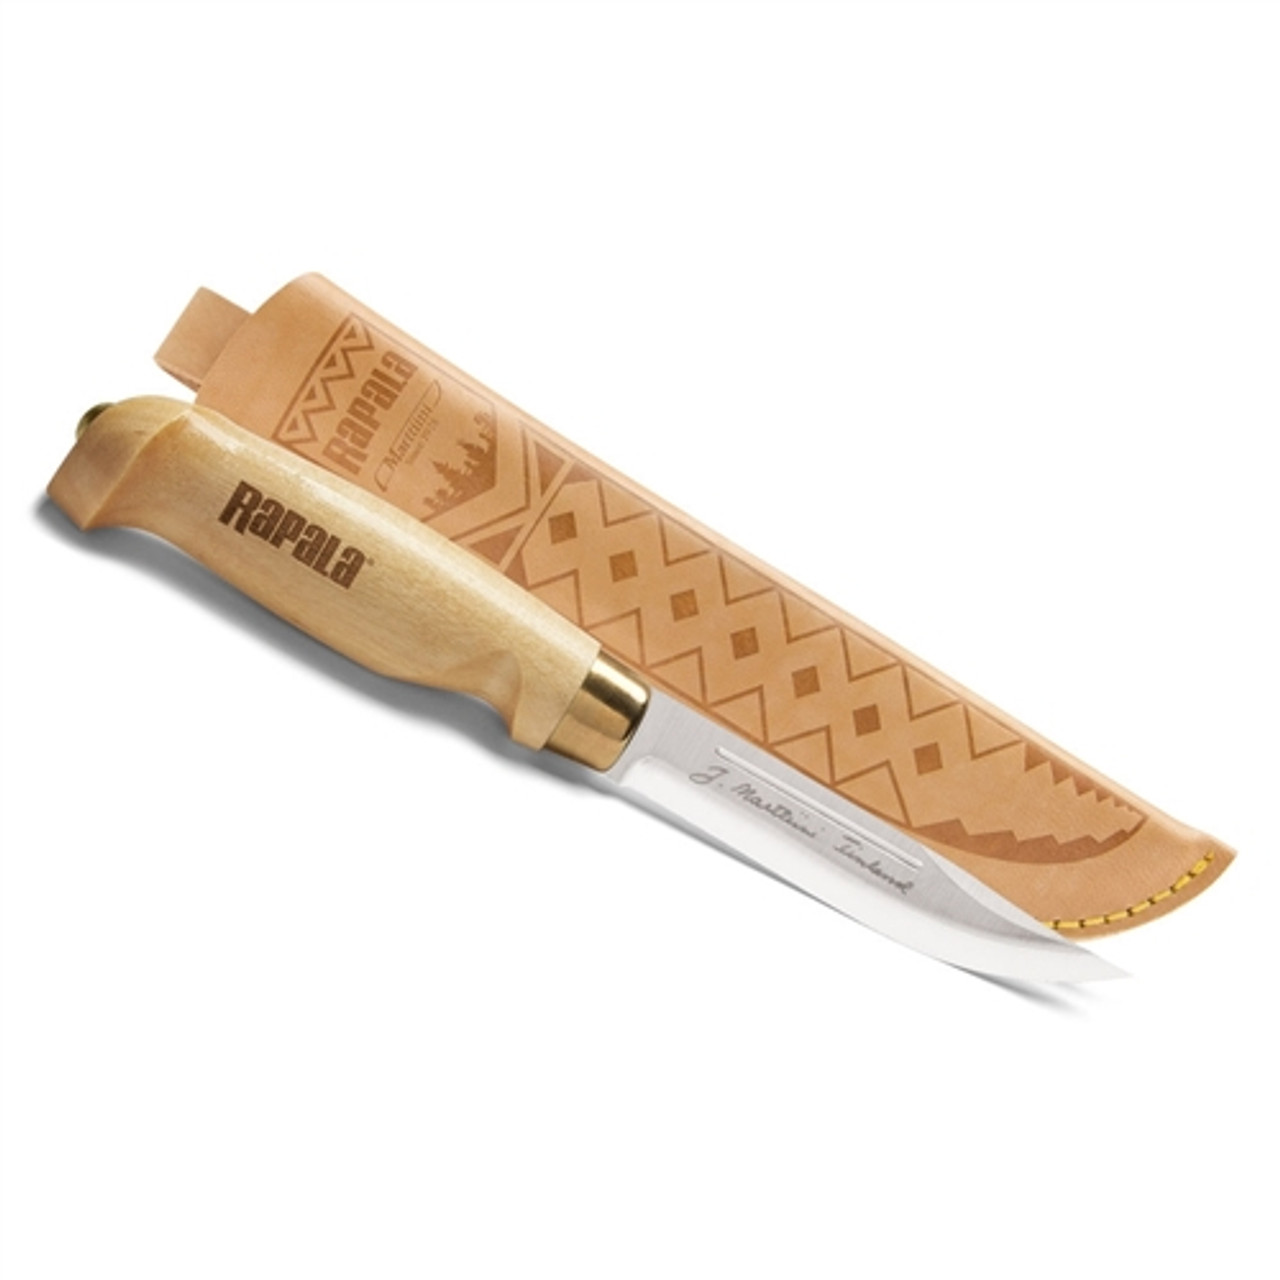 Rapala CBCP45 Classic Birch Clip Point Fixed Blade Knife, Satin Blade